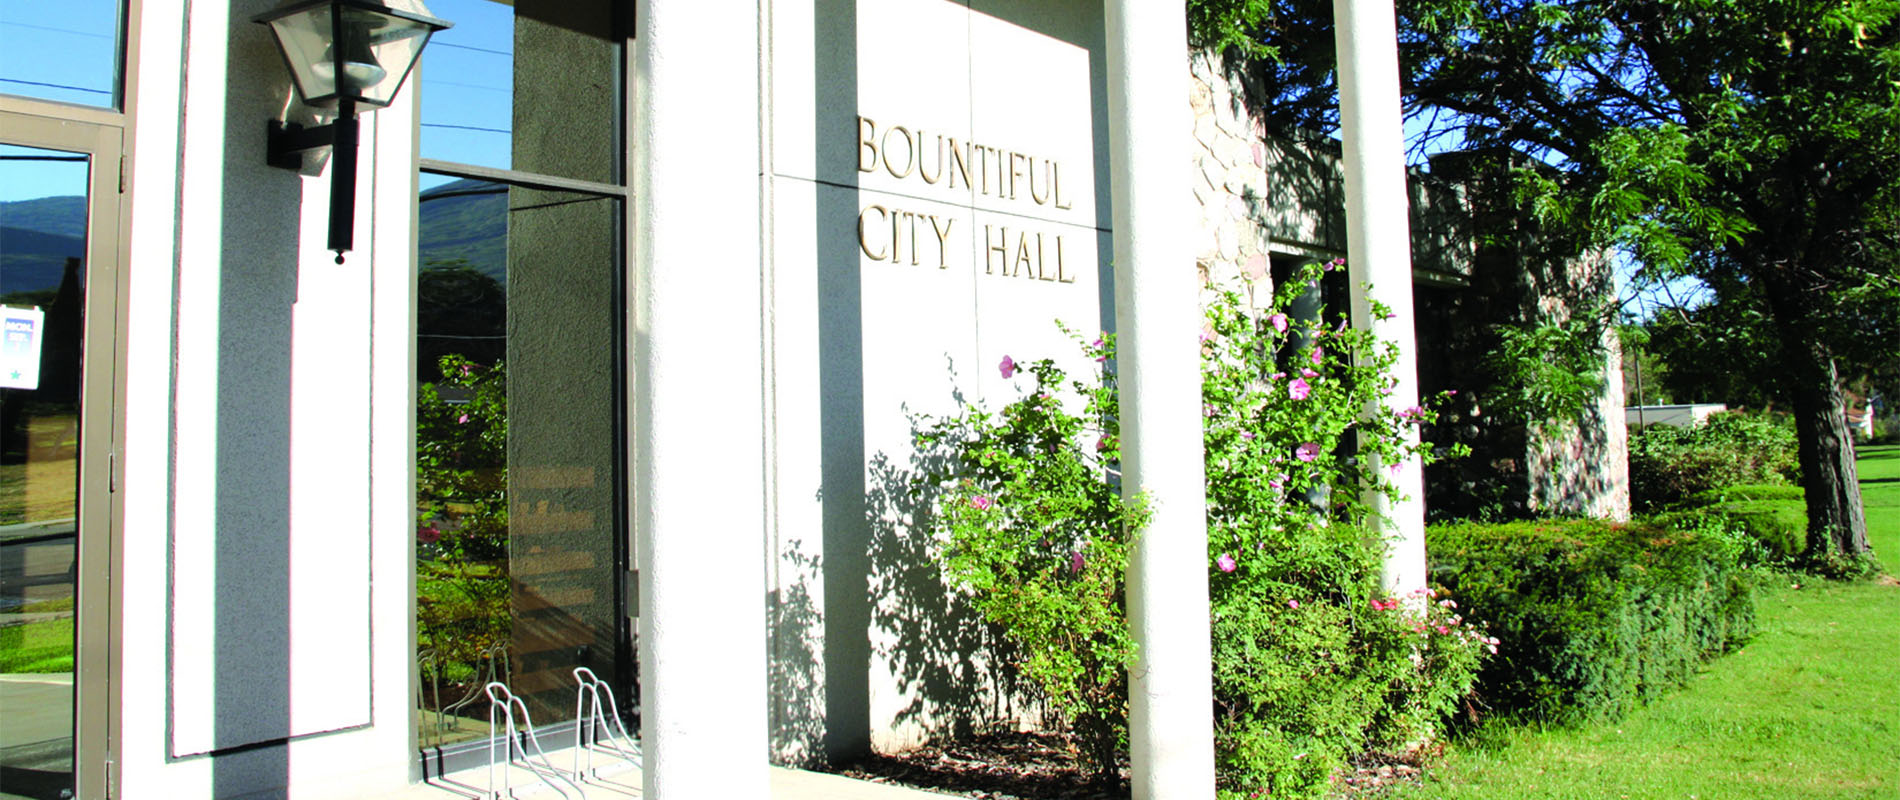 Bountiful City Hall